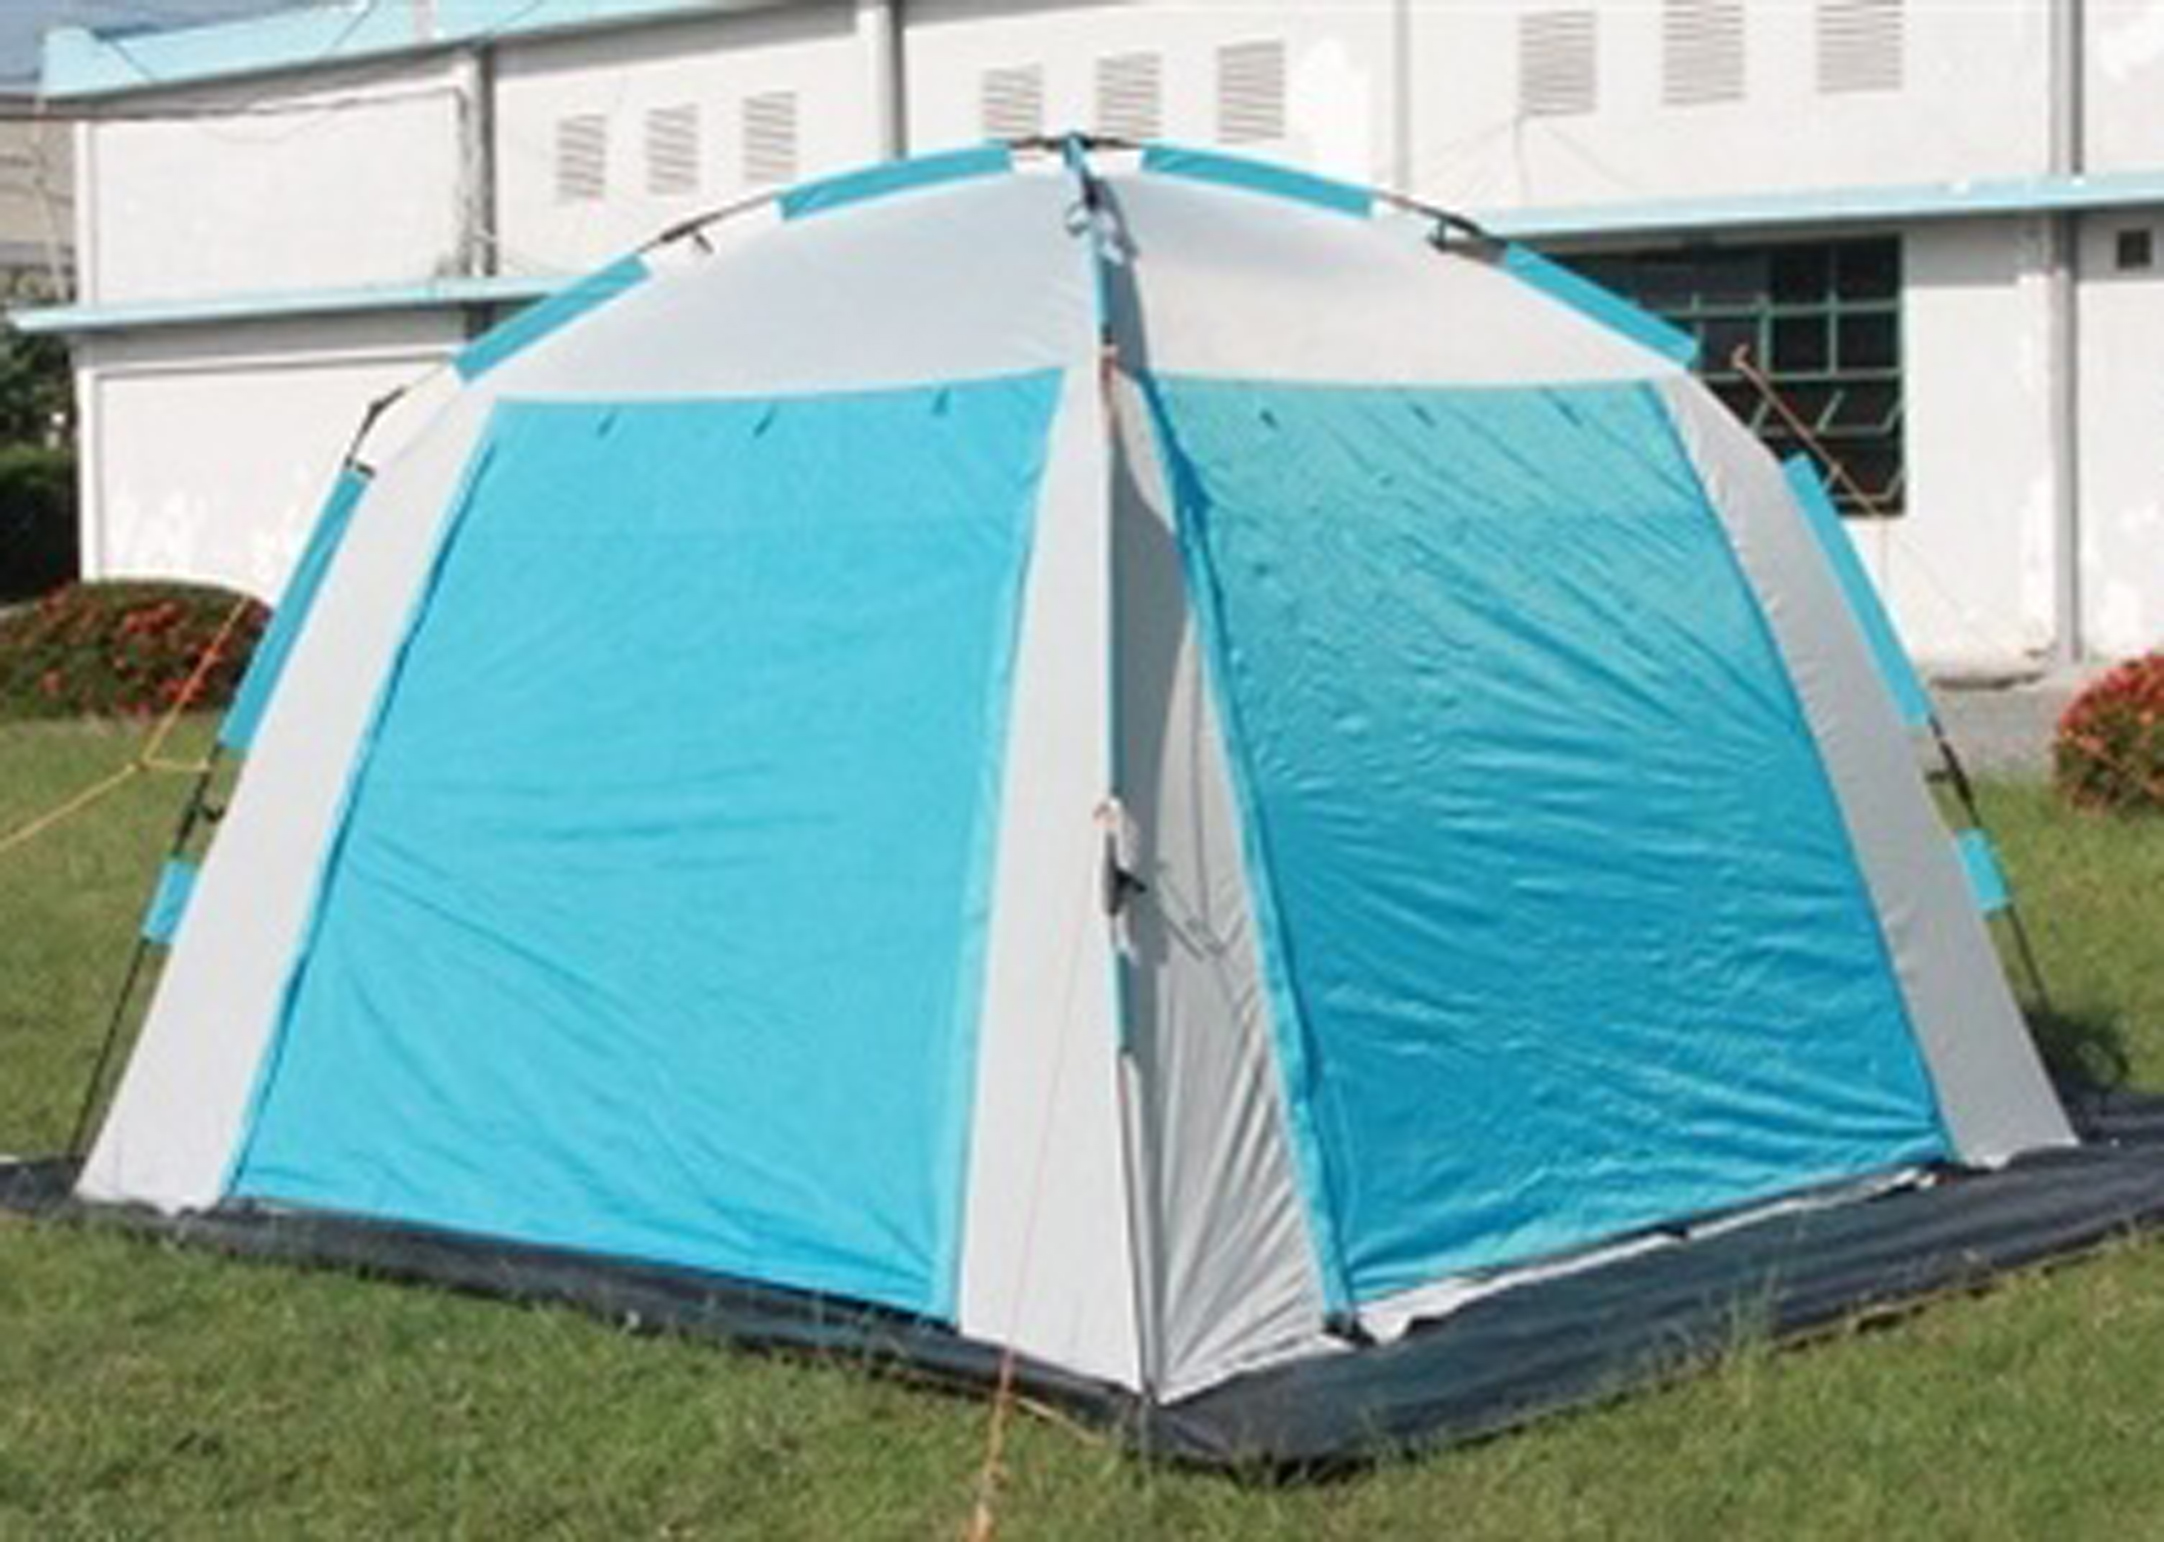 Dog Show Event Tent Blue 300 x 300 cm - Limited Edition